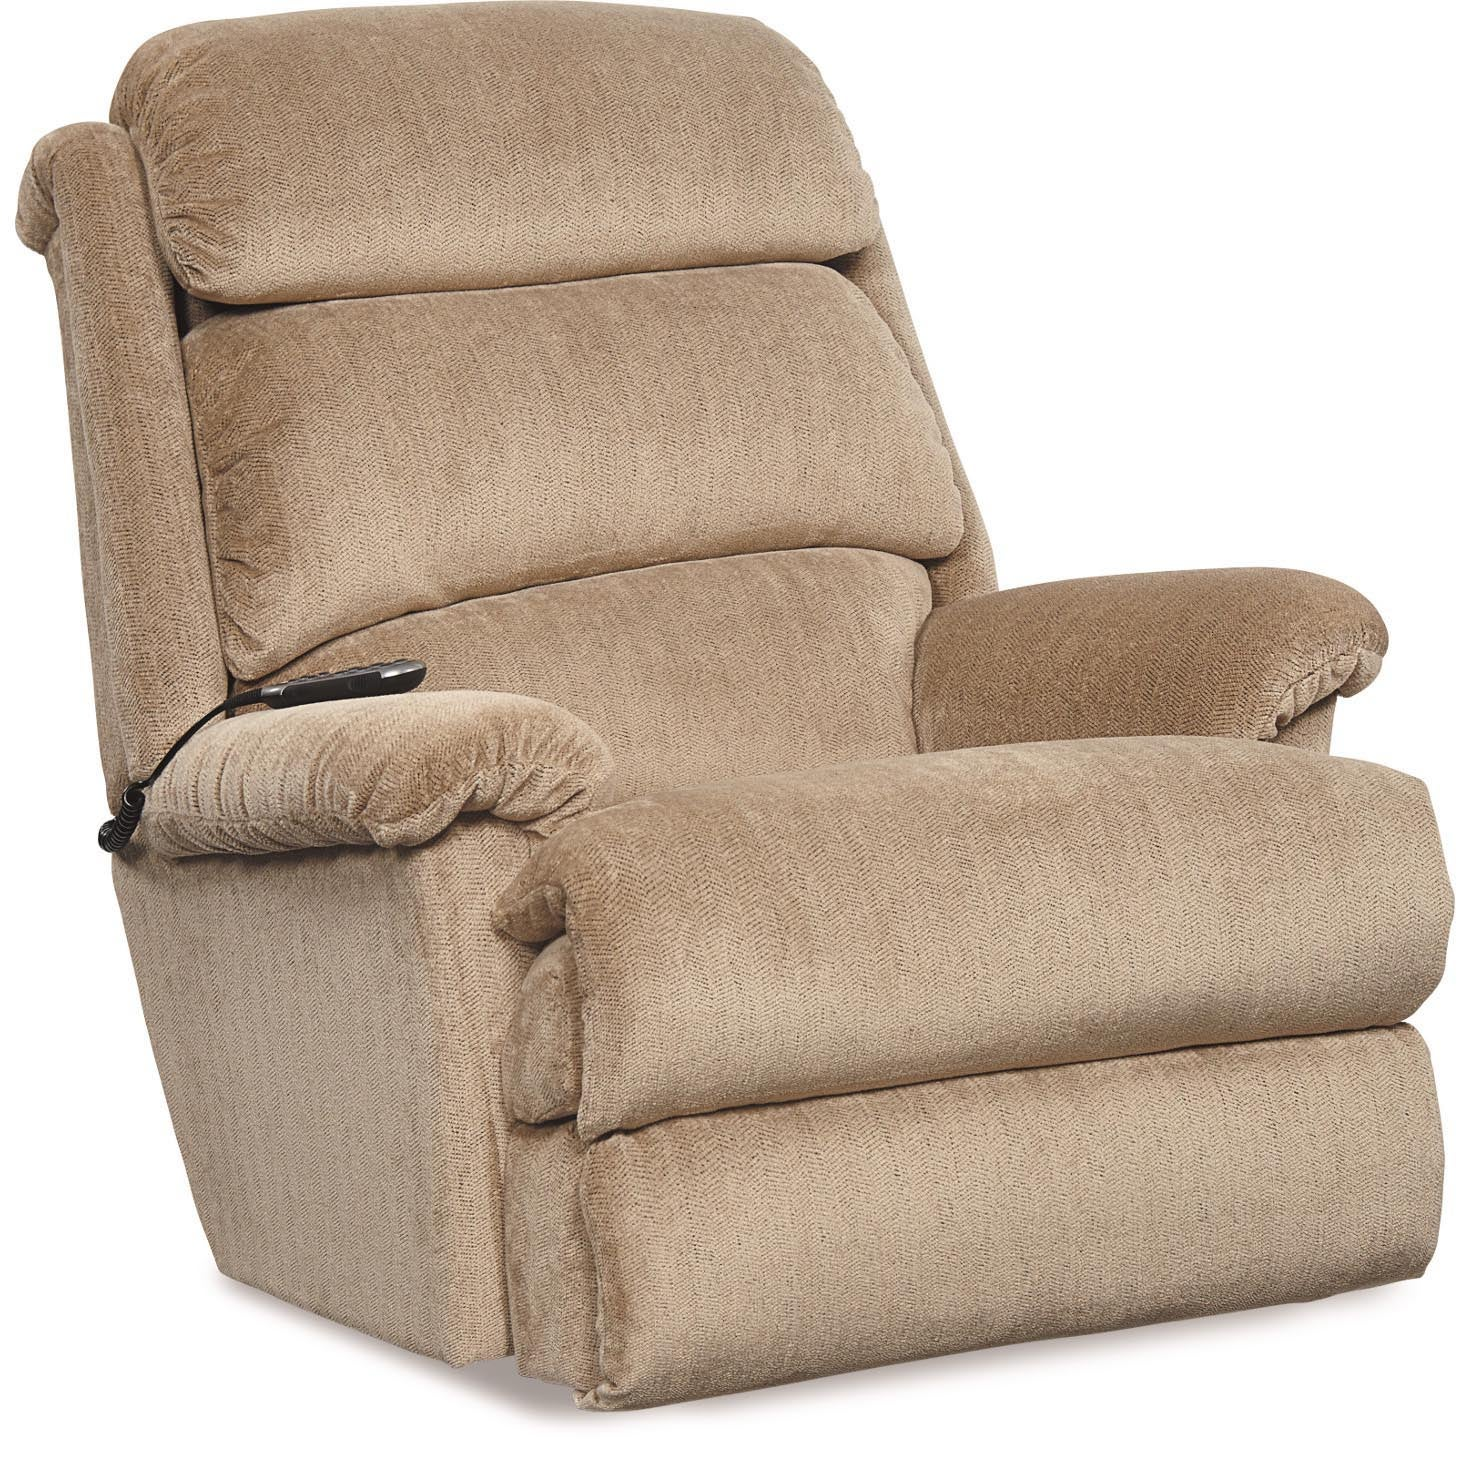 Astor Reclina Rocker Recliner